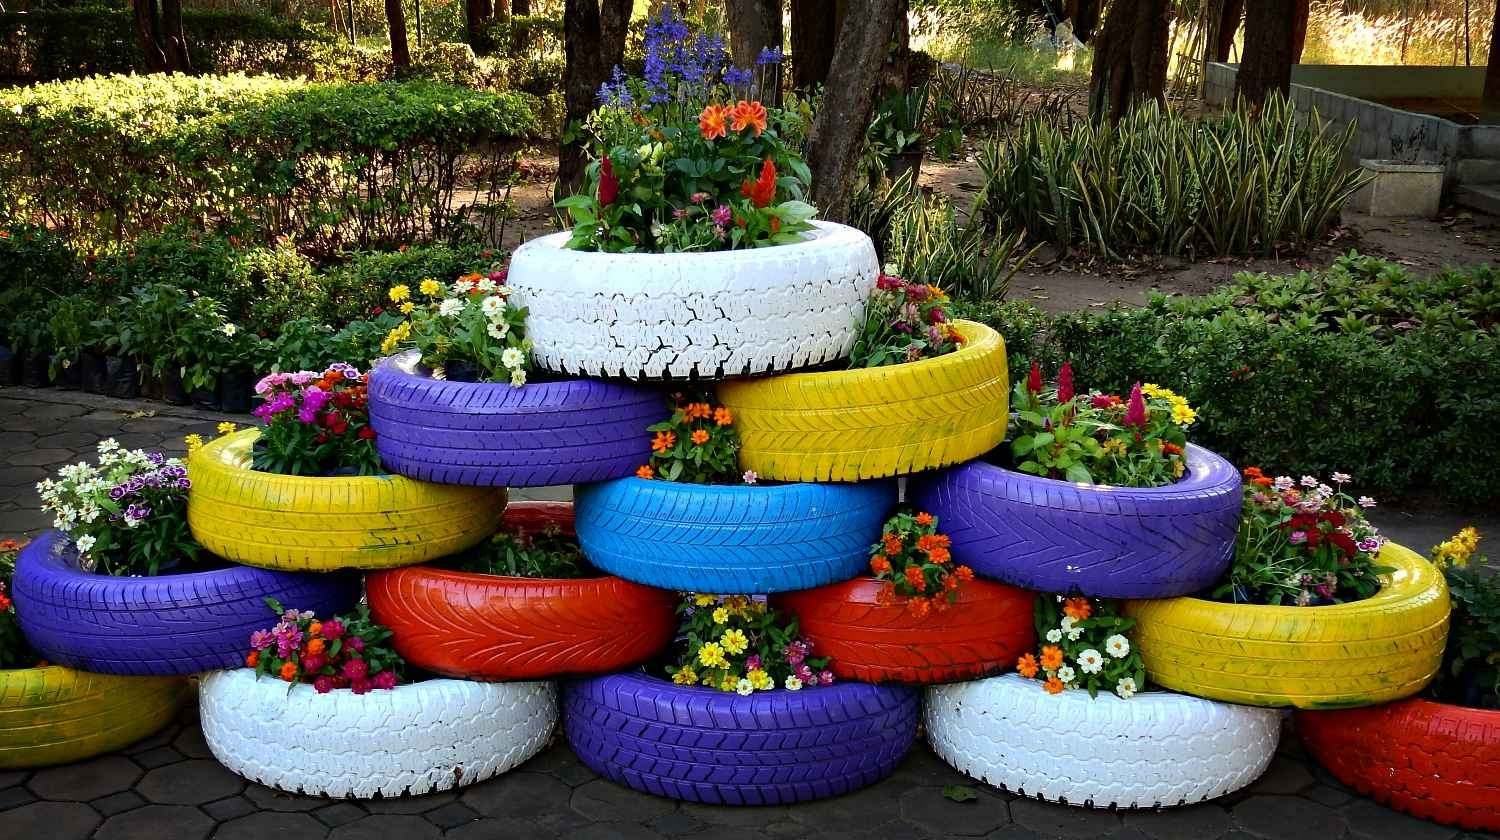 6 Way To Reuse Old Tires For Survival | Survival Life with Flower Garden Using Old Tires